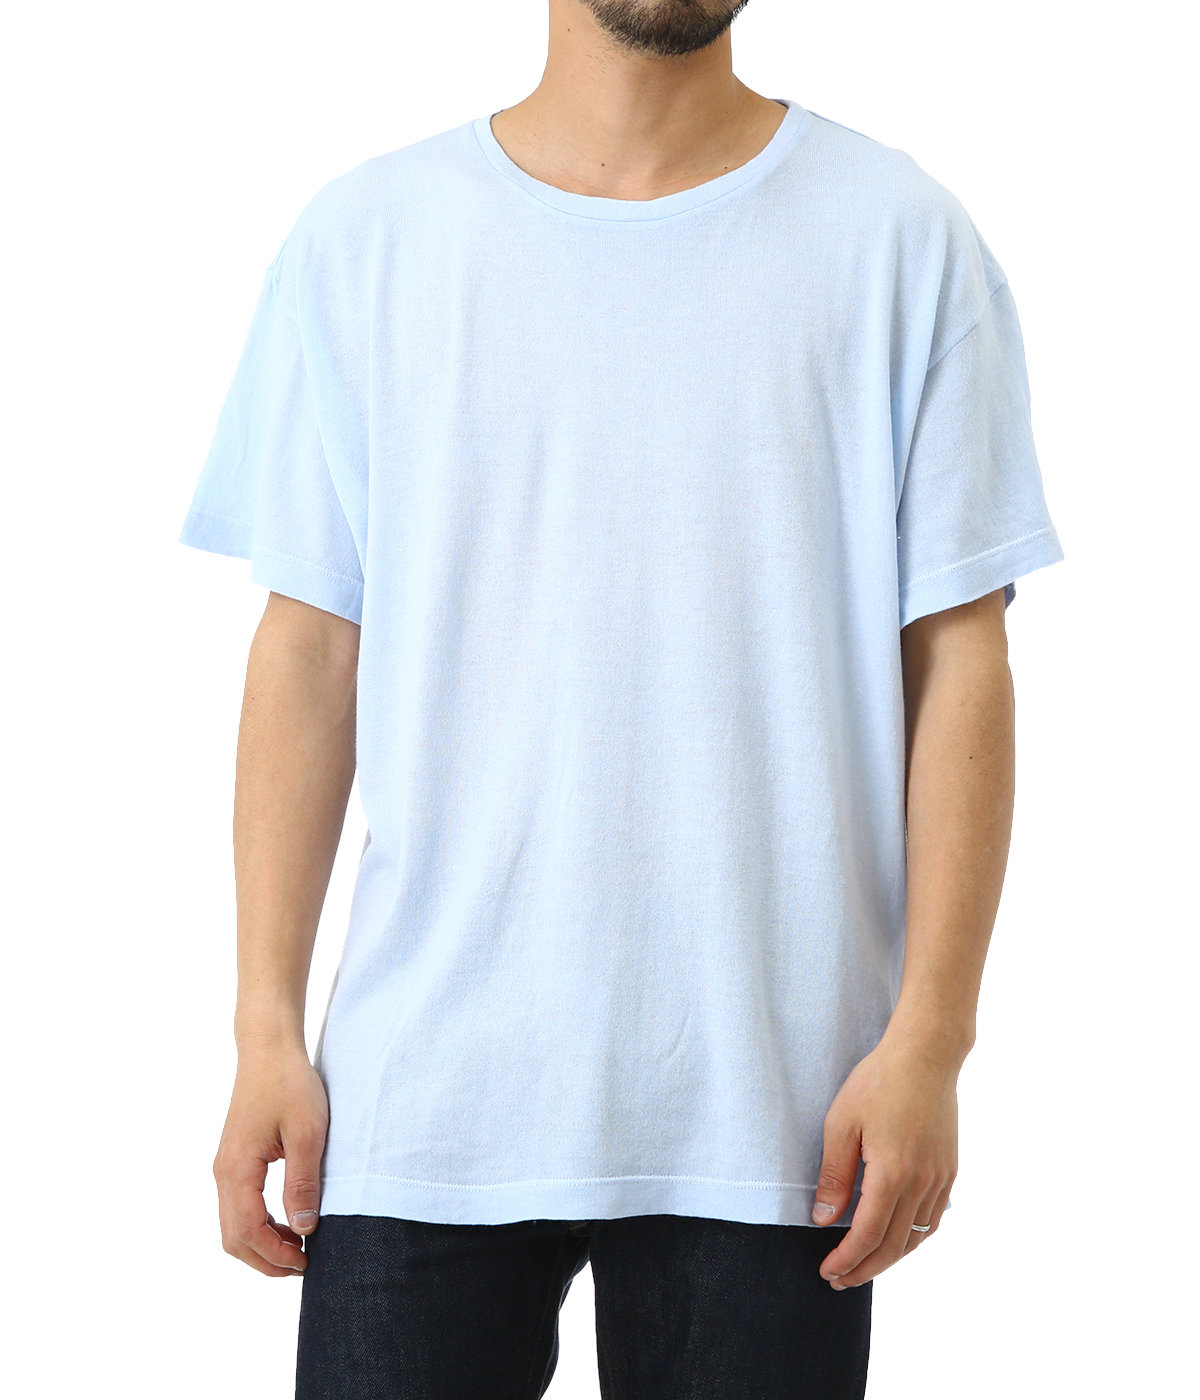 COTTON CASH T-SHIRT S/S